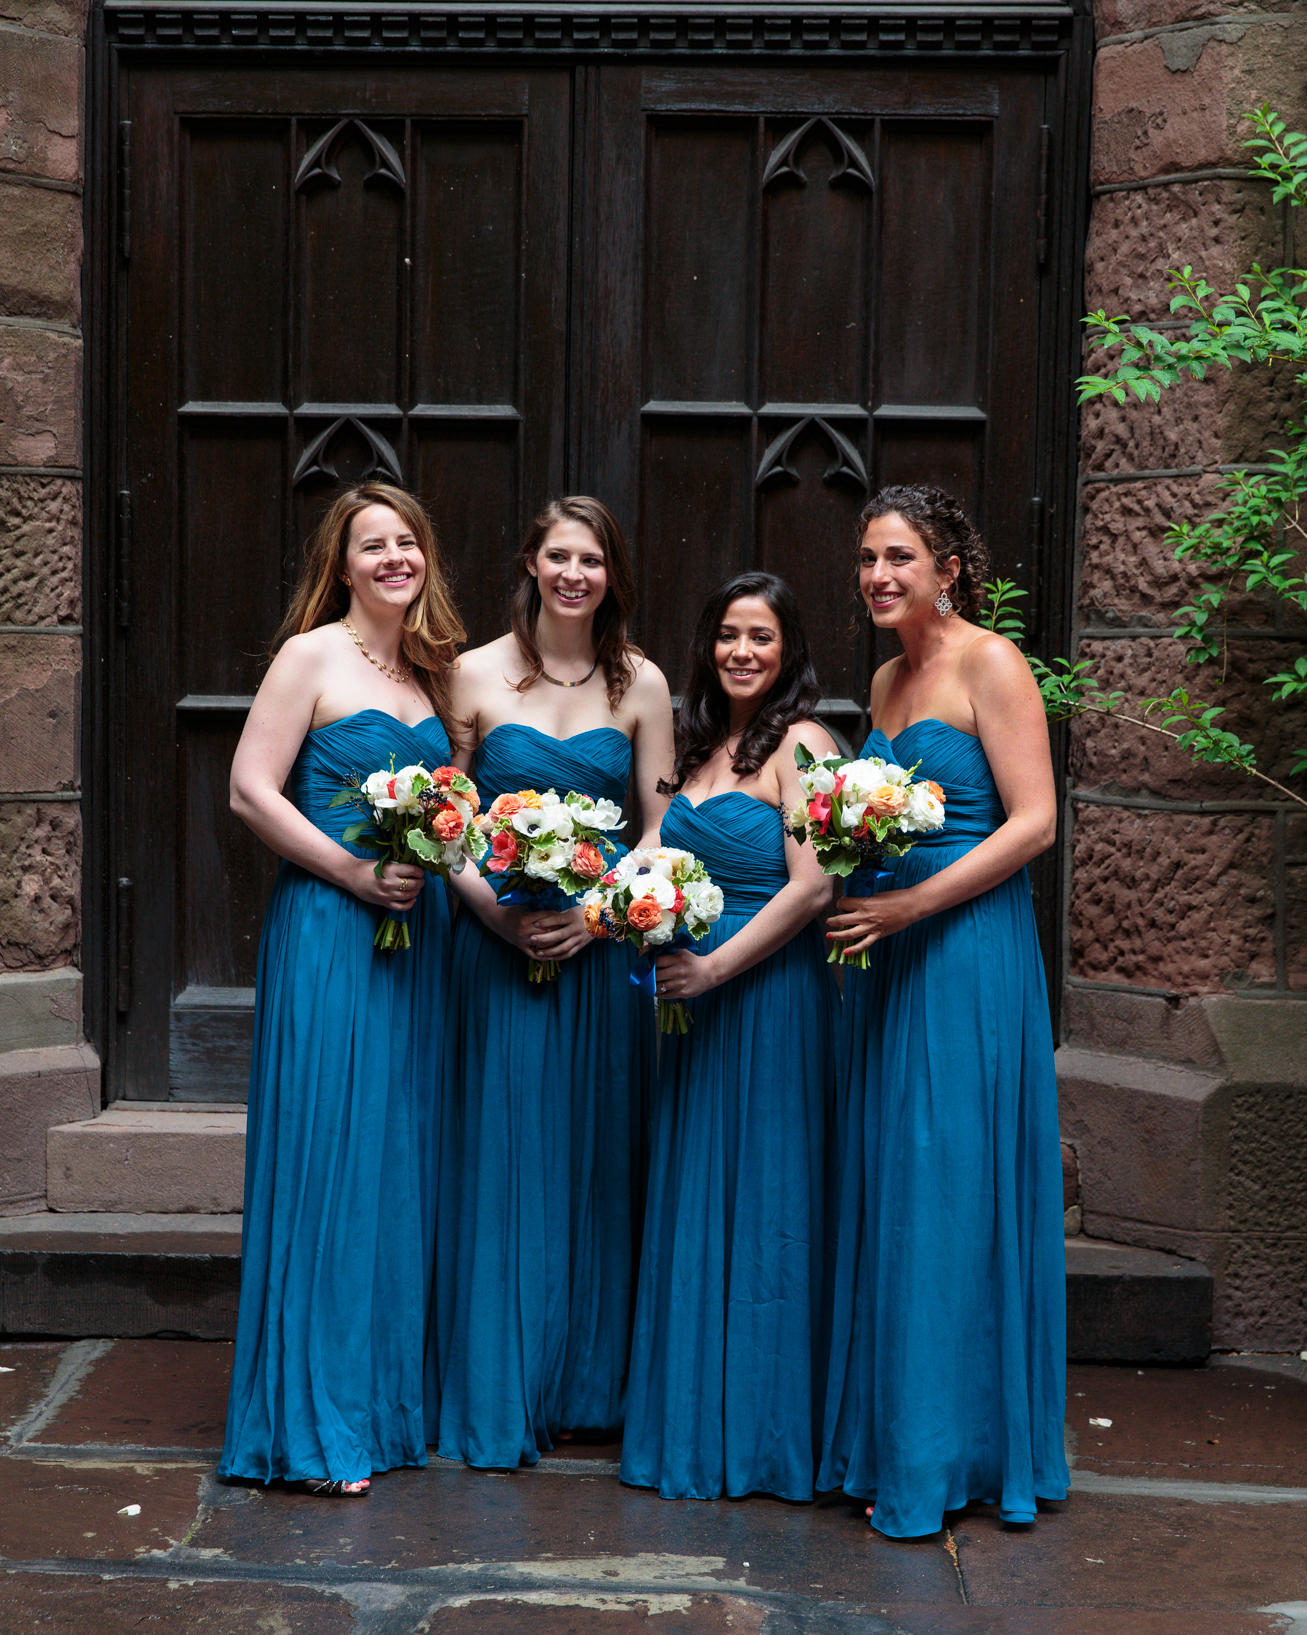 blake-chris-wedding-wd110141-bridesmaids-4876-0514.jpg